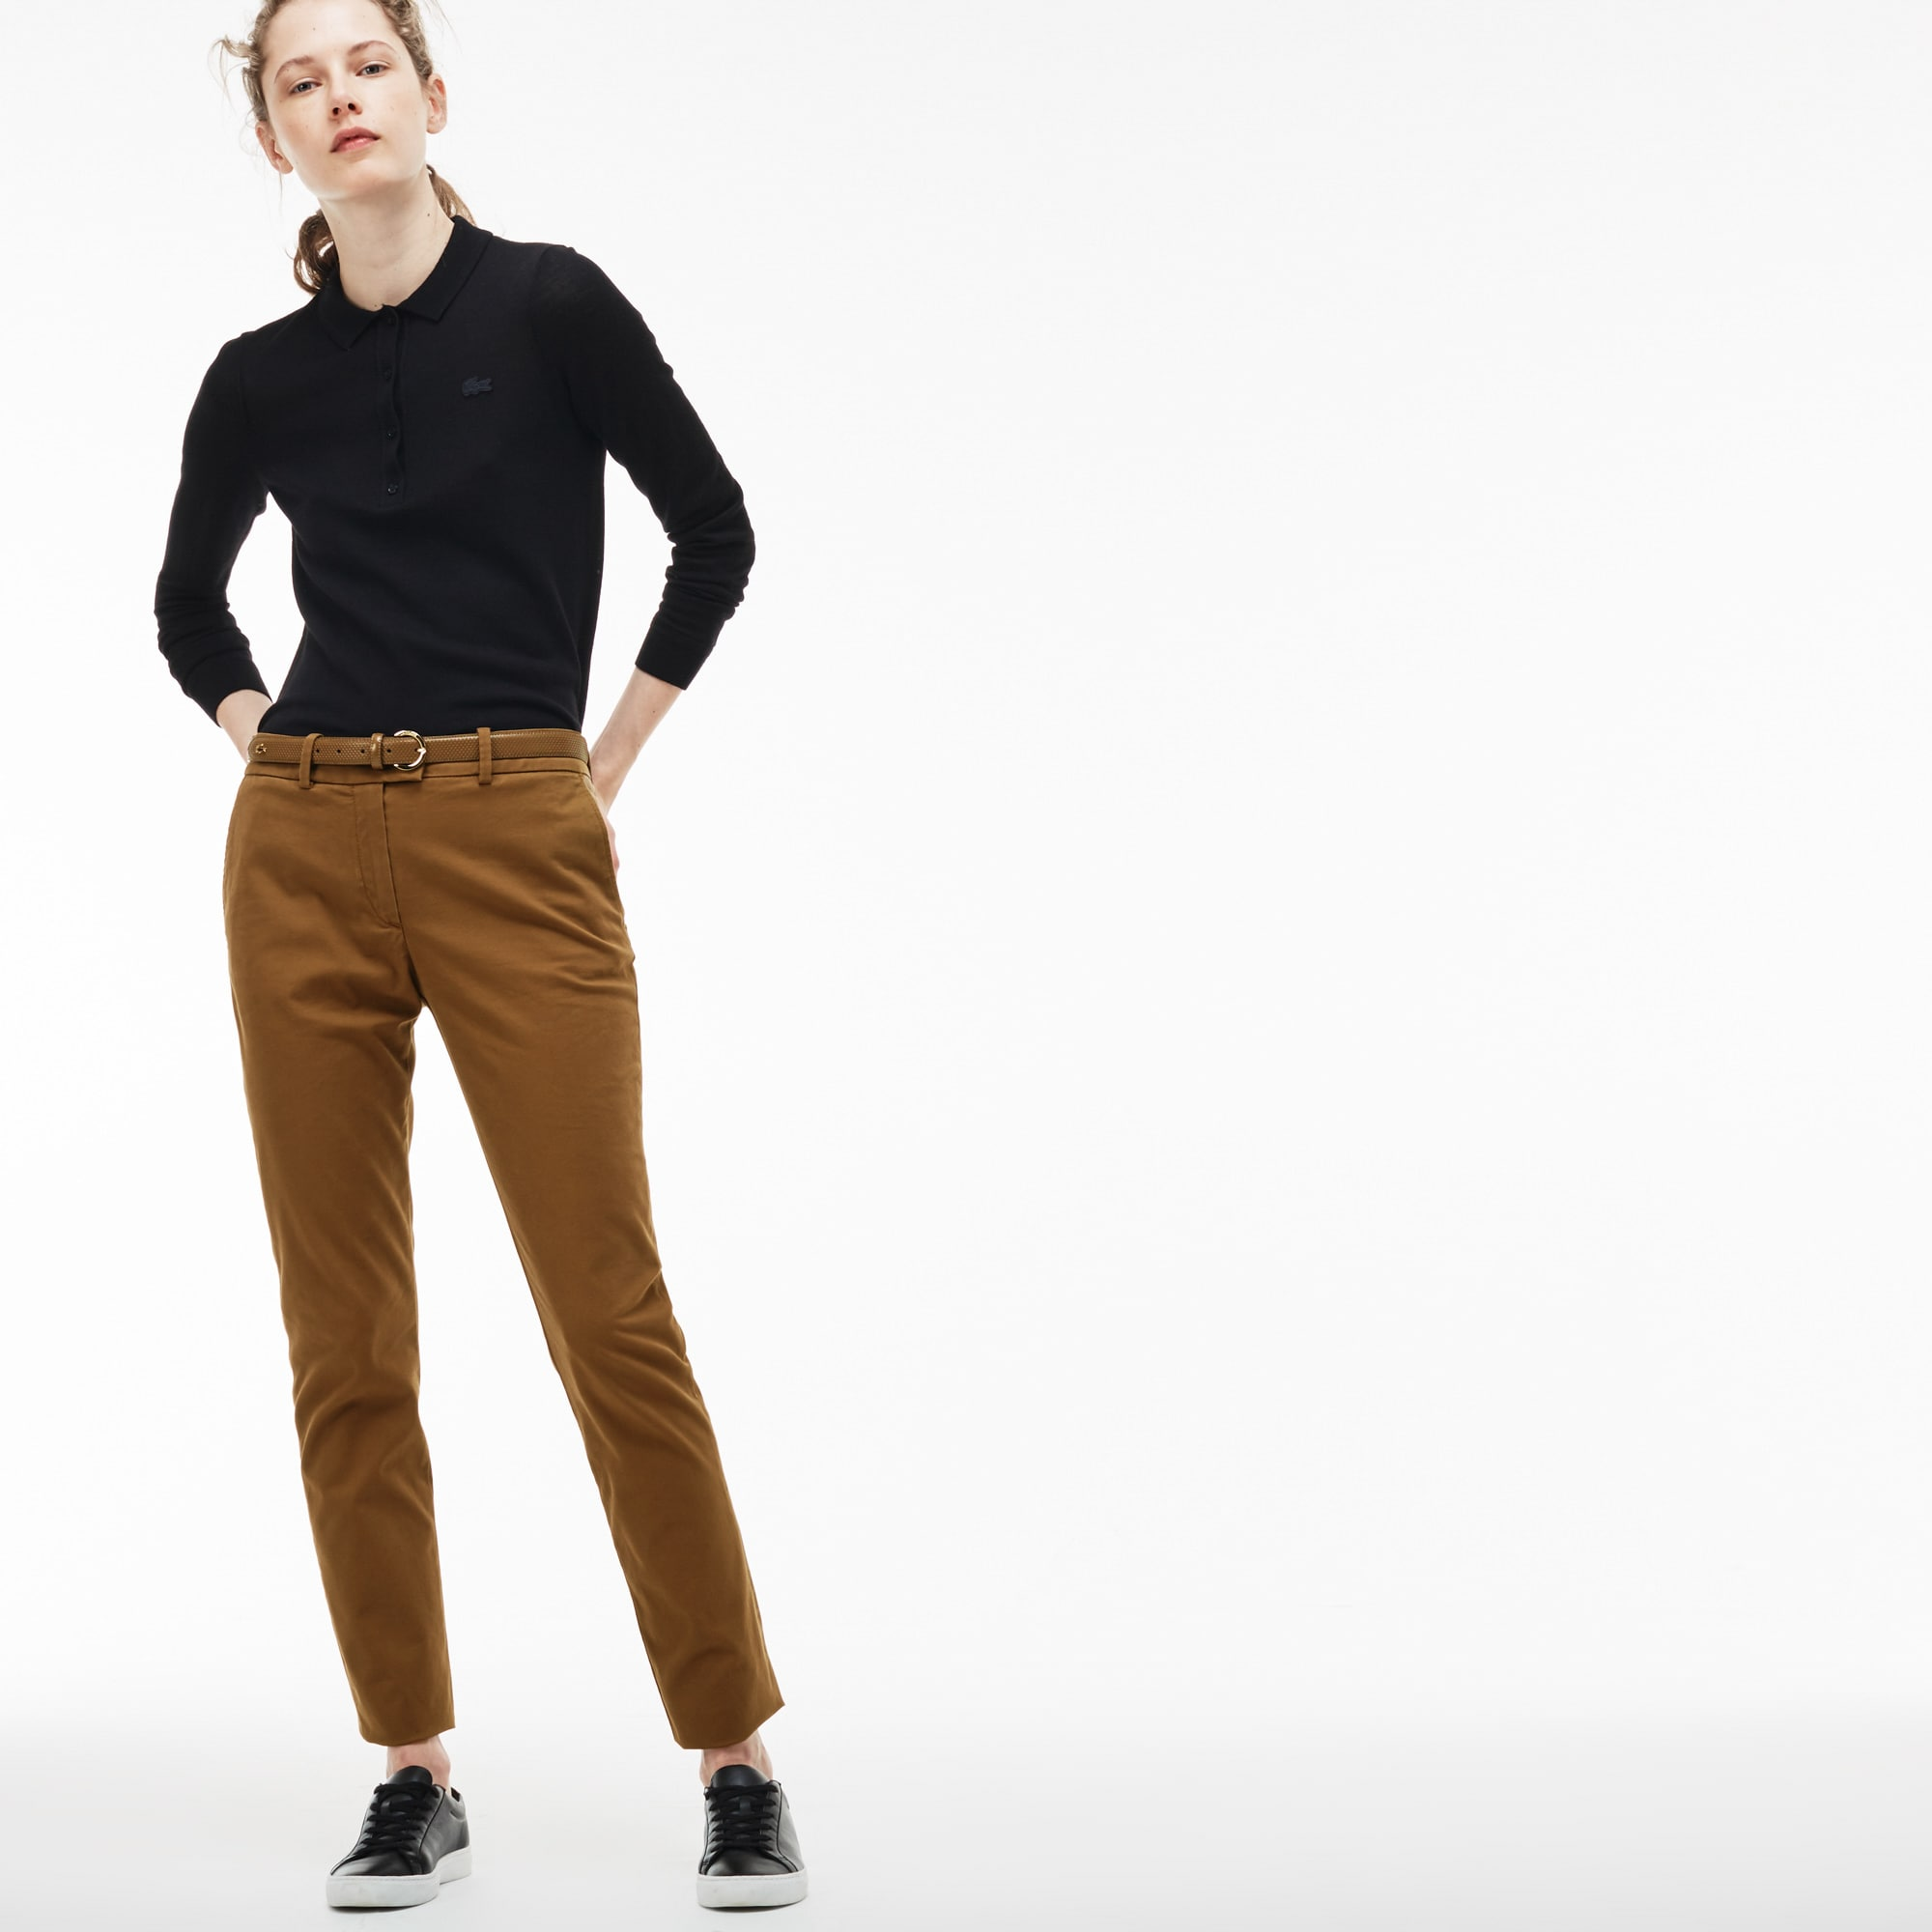 Women's Regular Fit Stretch Cotton Gabardine Chino Pants